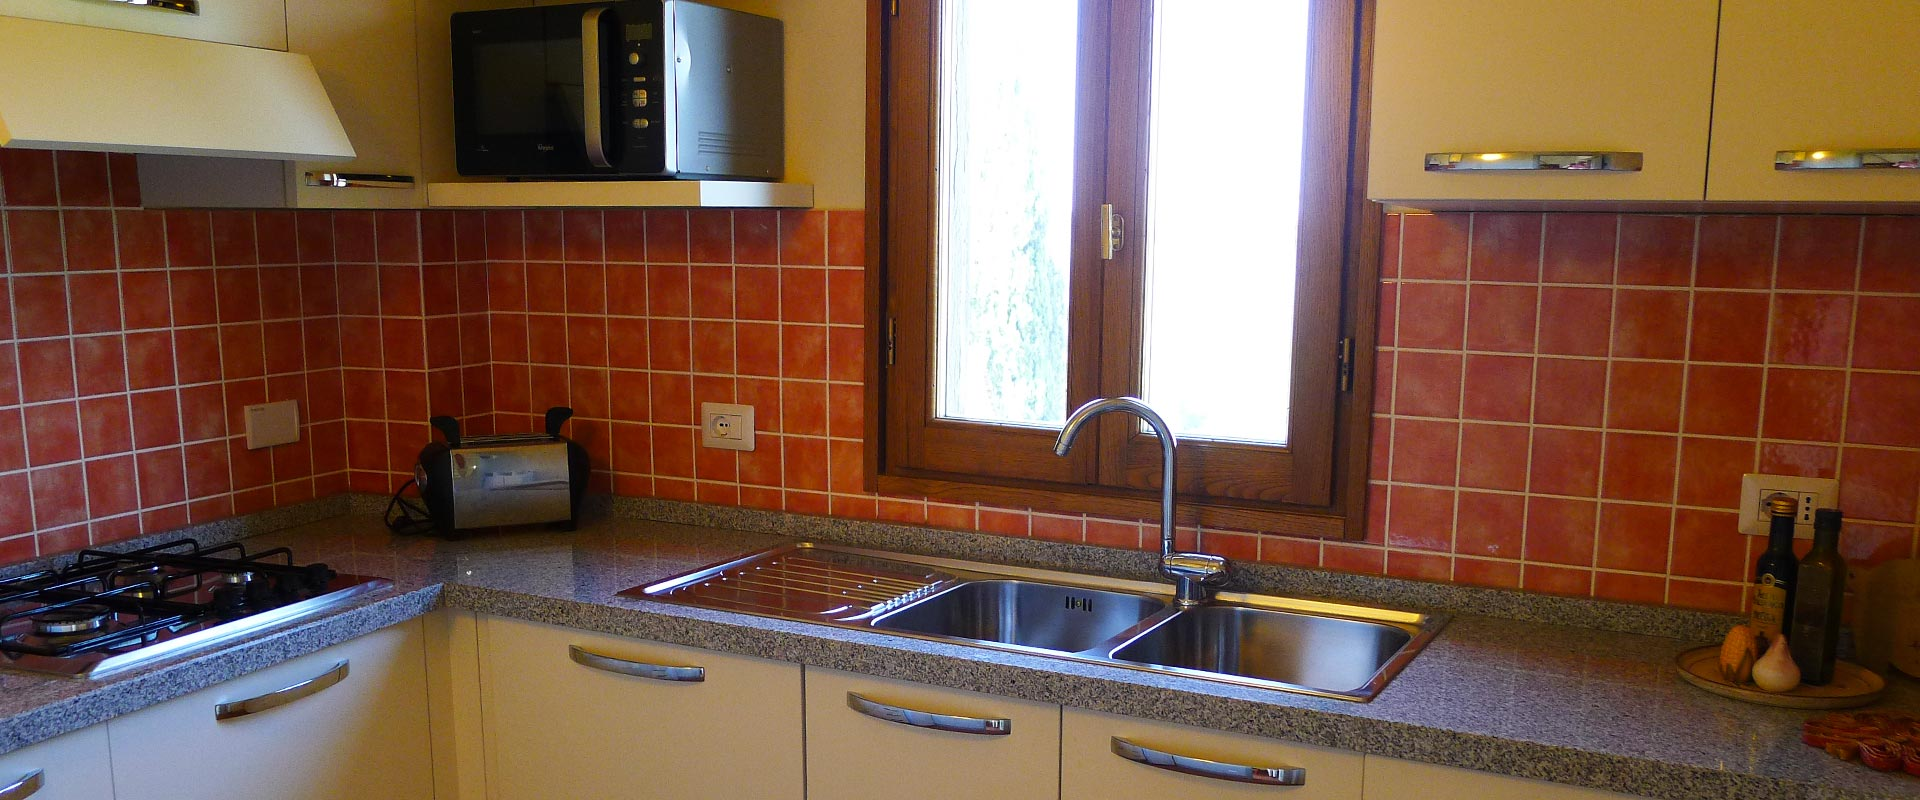 Apartment to rent in Chianti